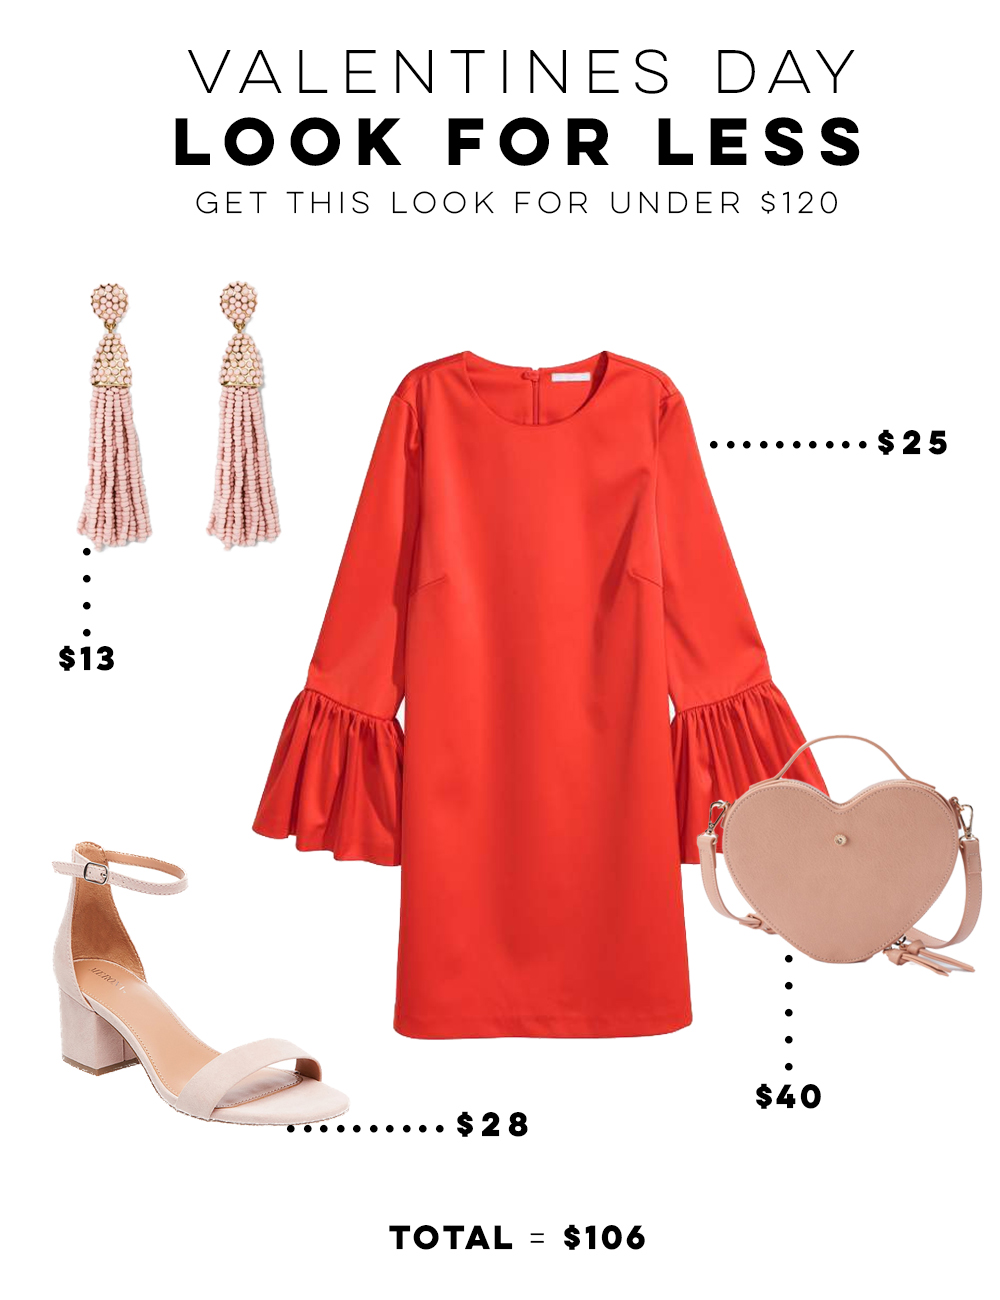 Valentines Day Look for Less Under $120 - H&M Red Dress + Blush Pink Accessories